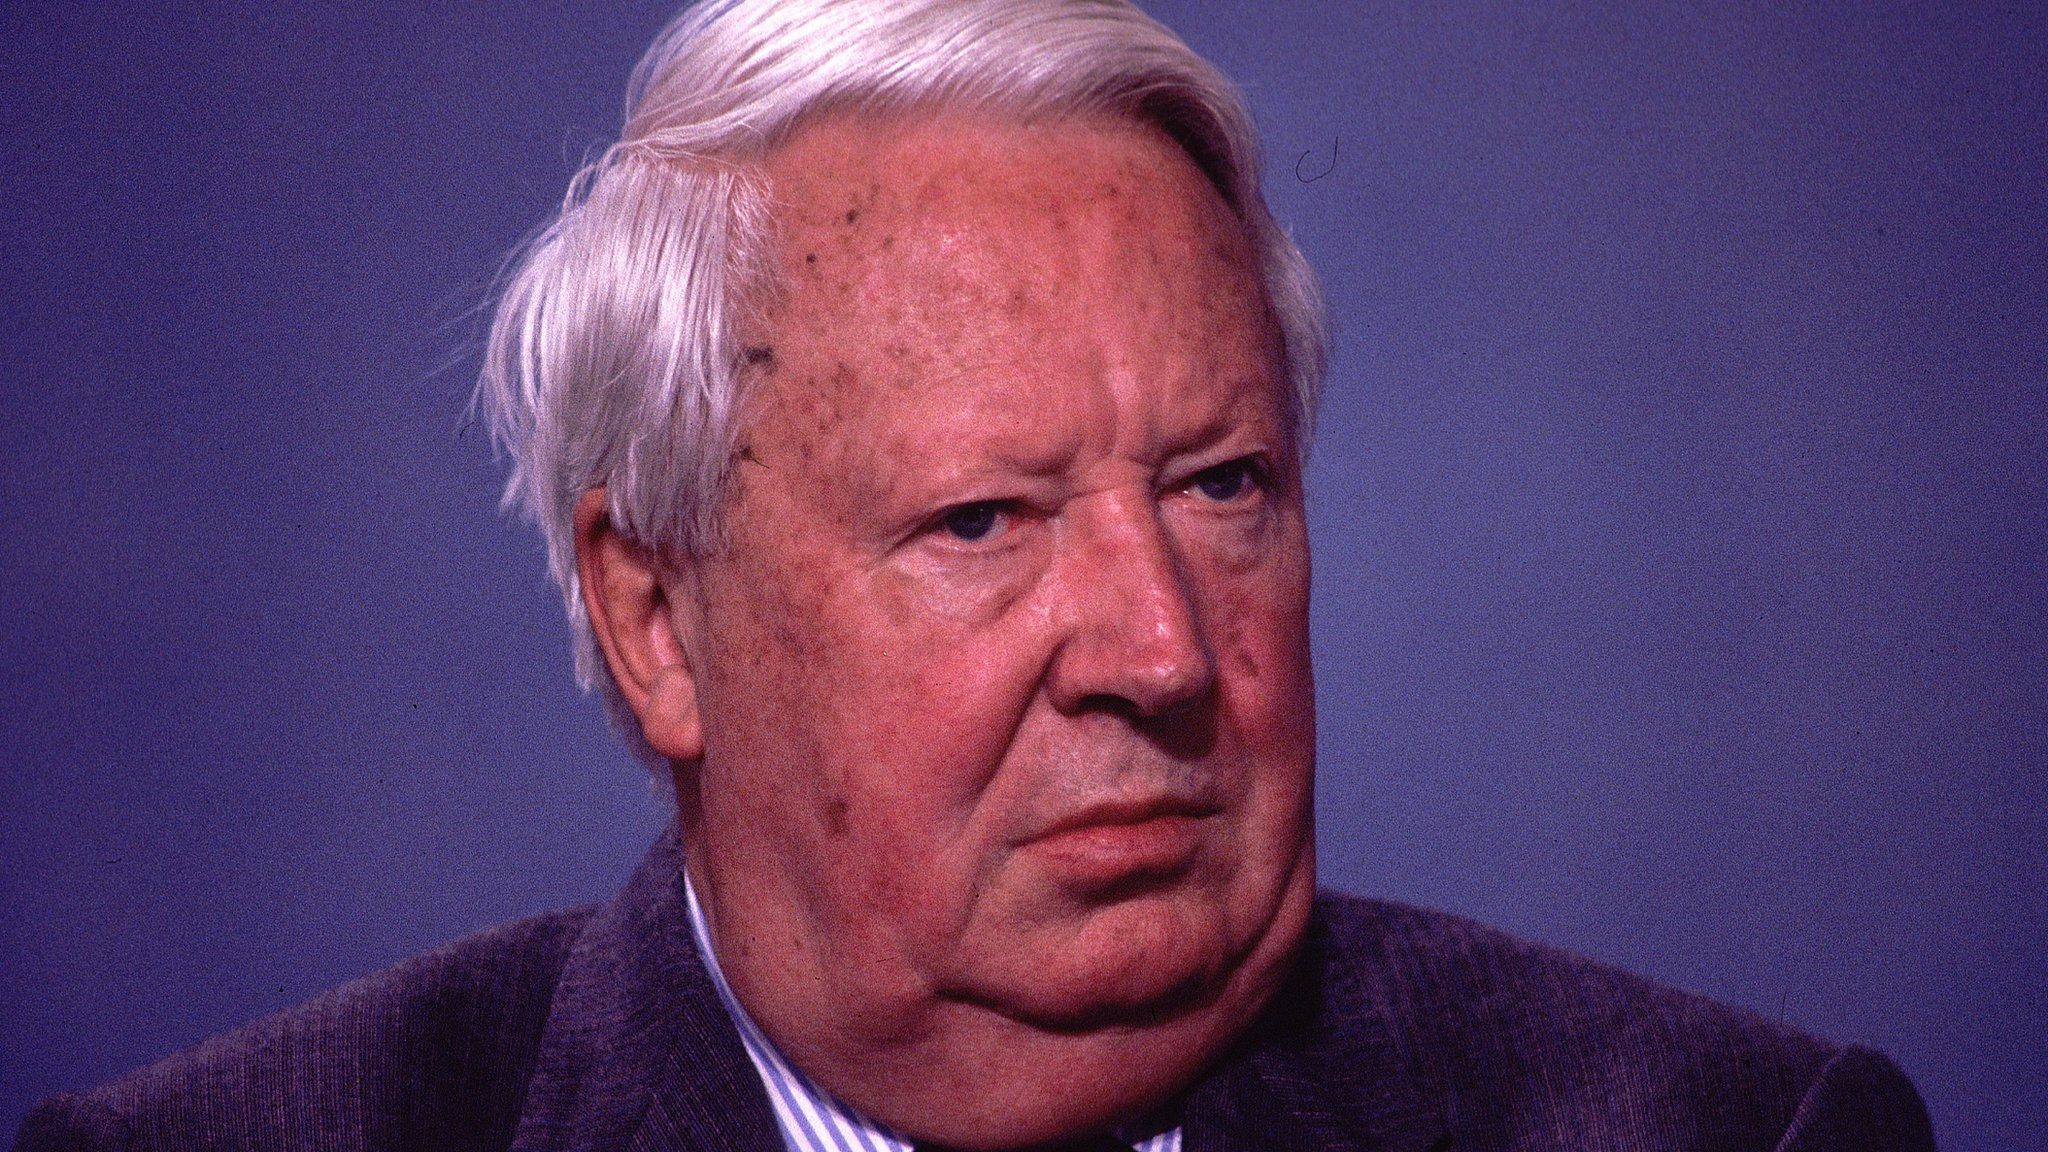 Edward Heath abuse claims: Police defend investigation